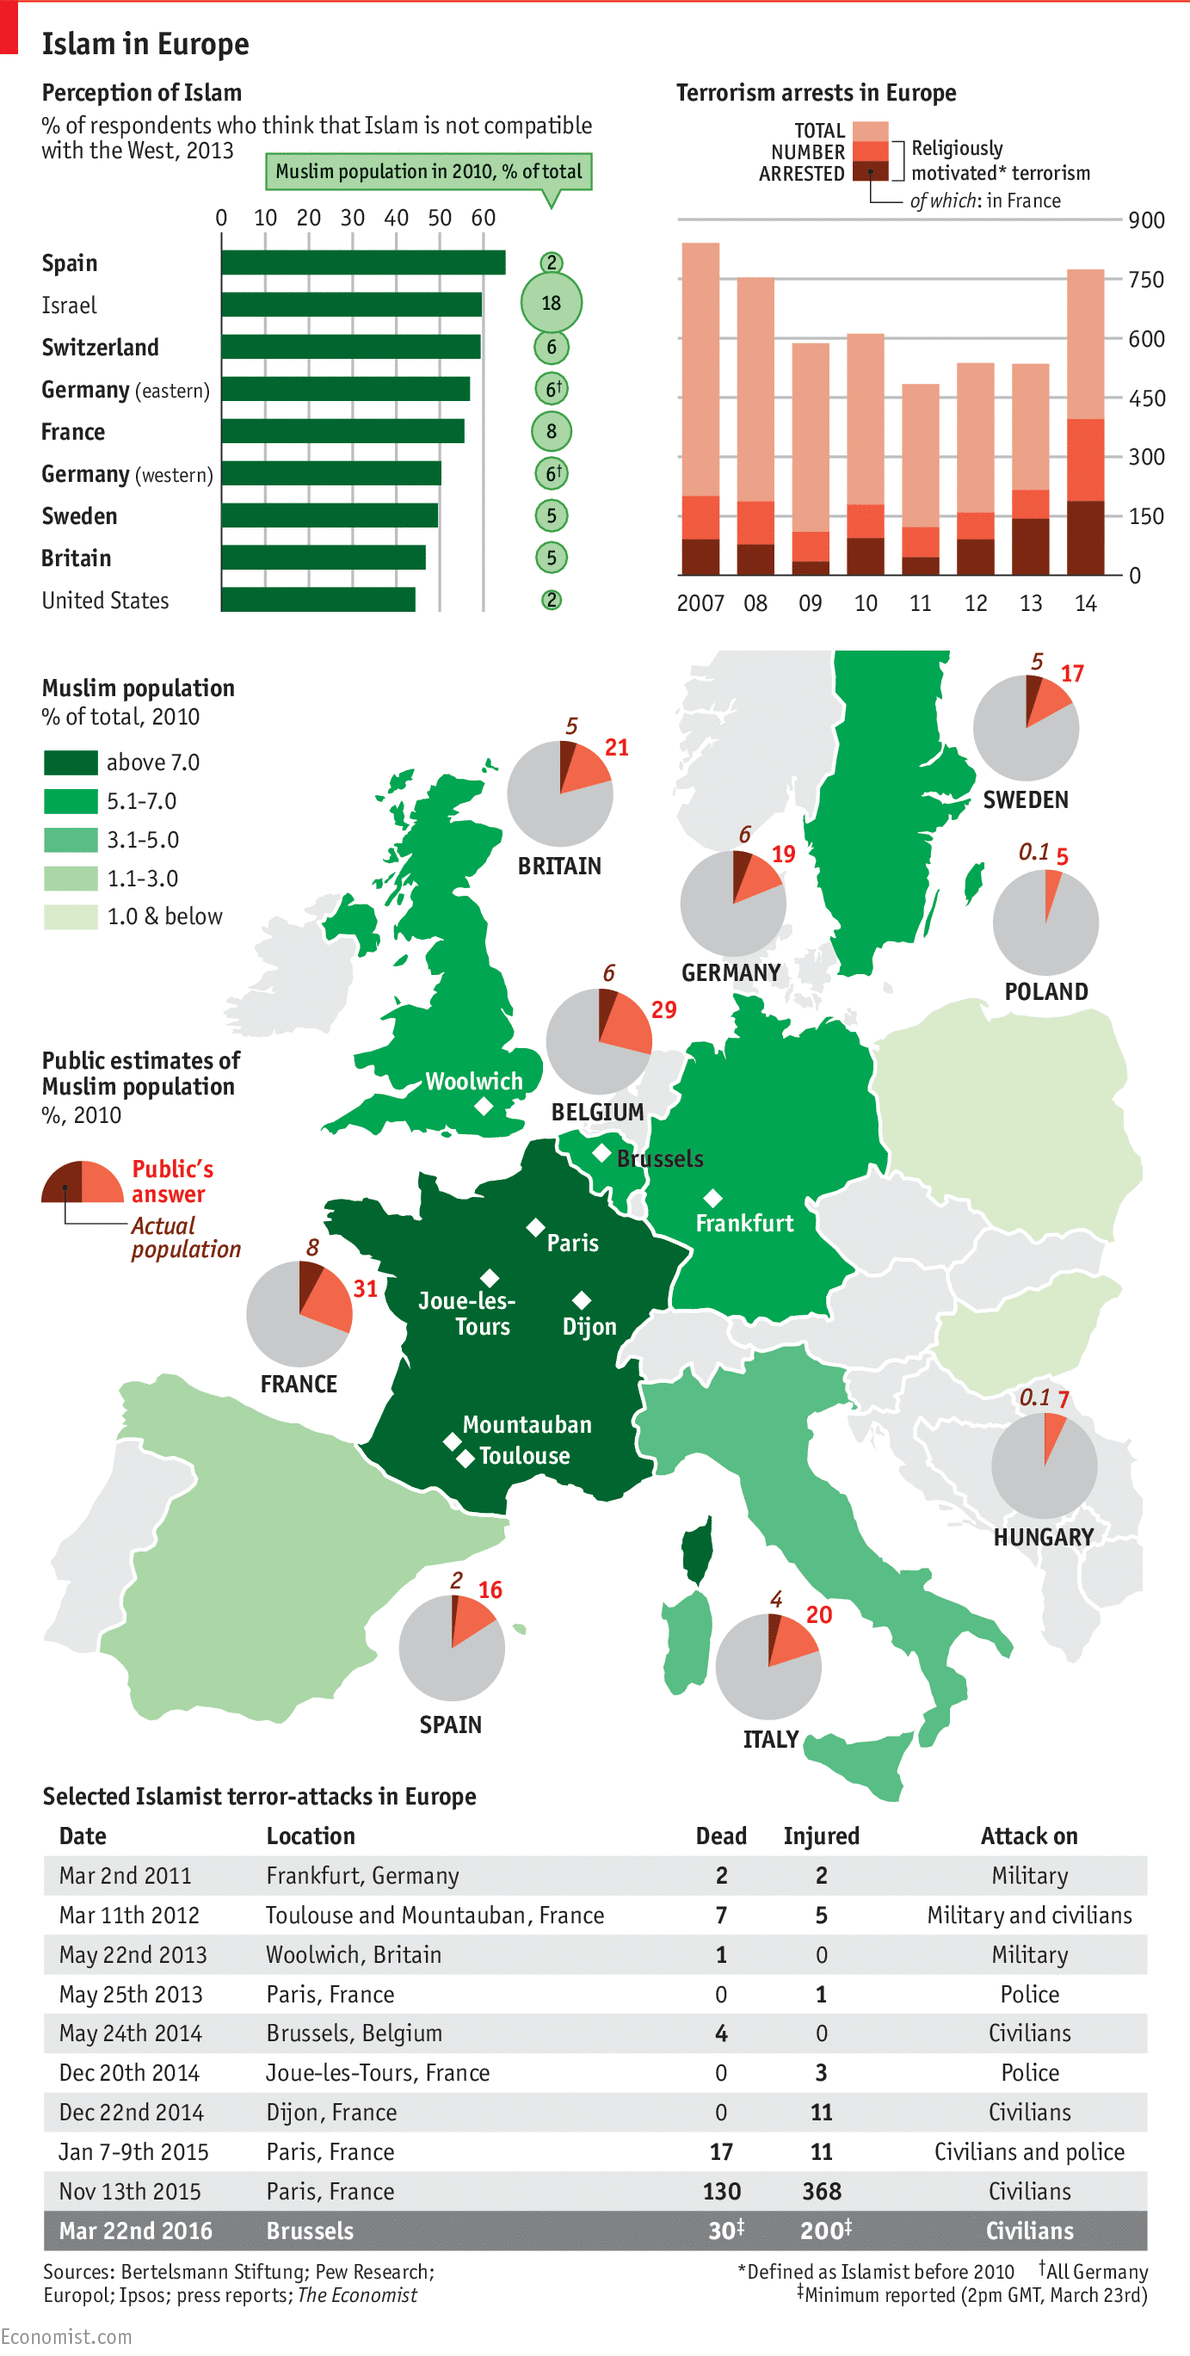 islam-percepcion-europe.png